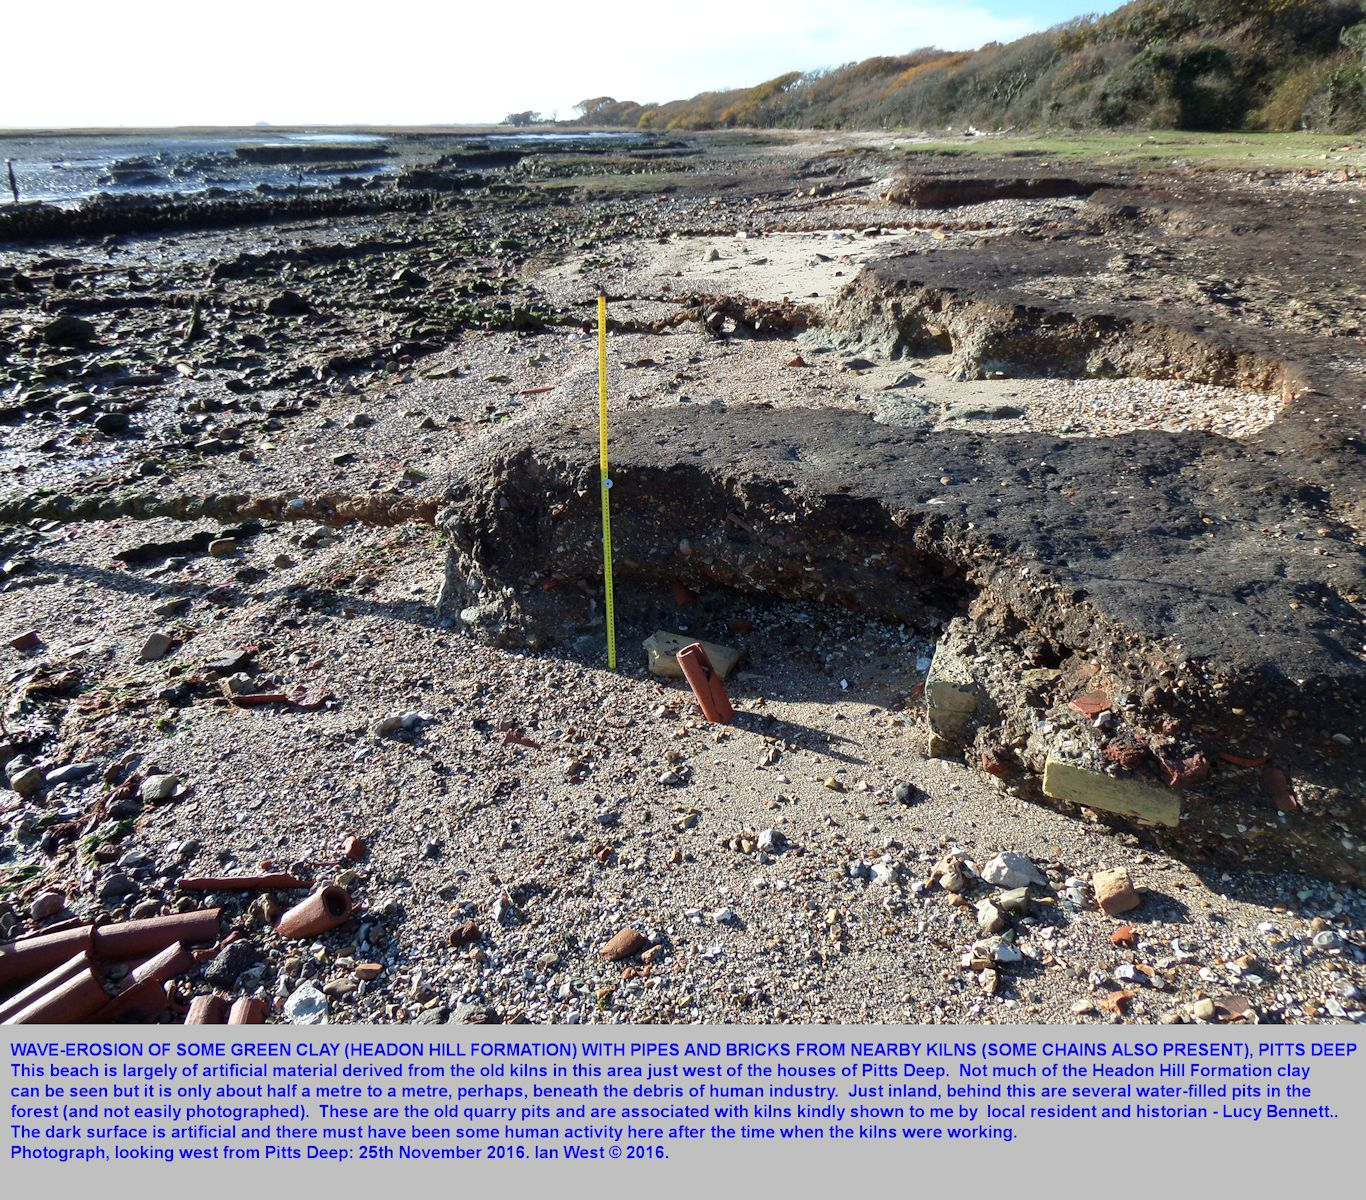 Green clay of the Headon Hill Formation is present beneath debris of bricks and pipes and other material, and old rusty chains, the Pitts Deep kiln area, just west of the houses, Pitts Deep, Solent Estuaries, southern England, November 2016